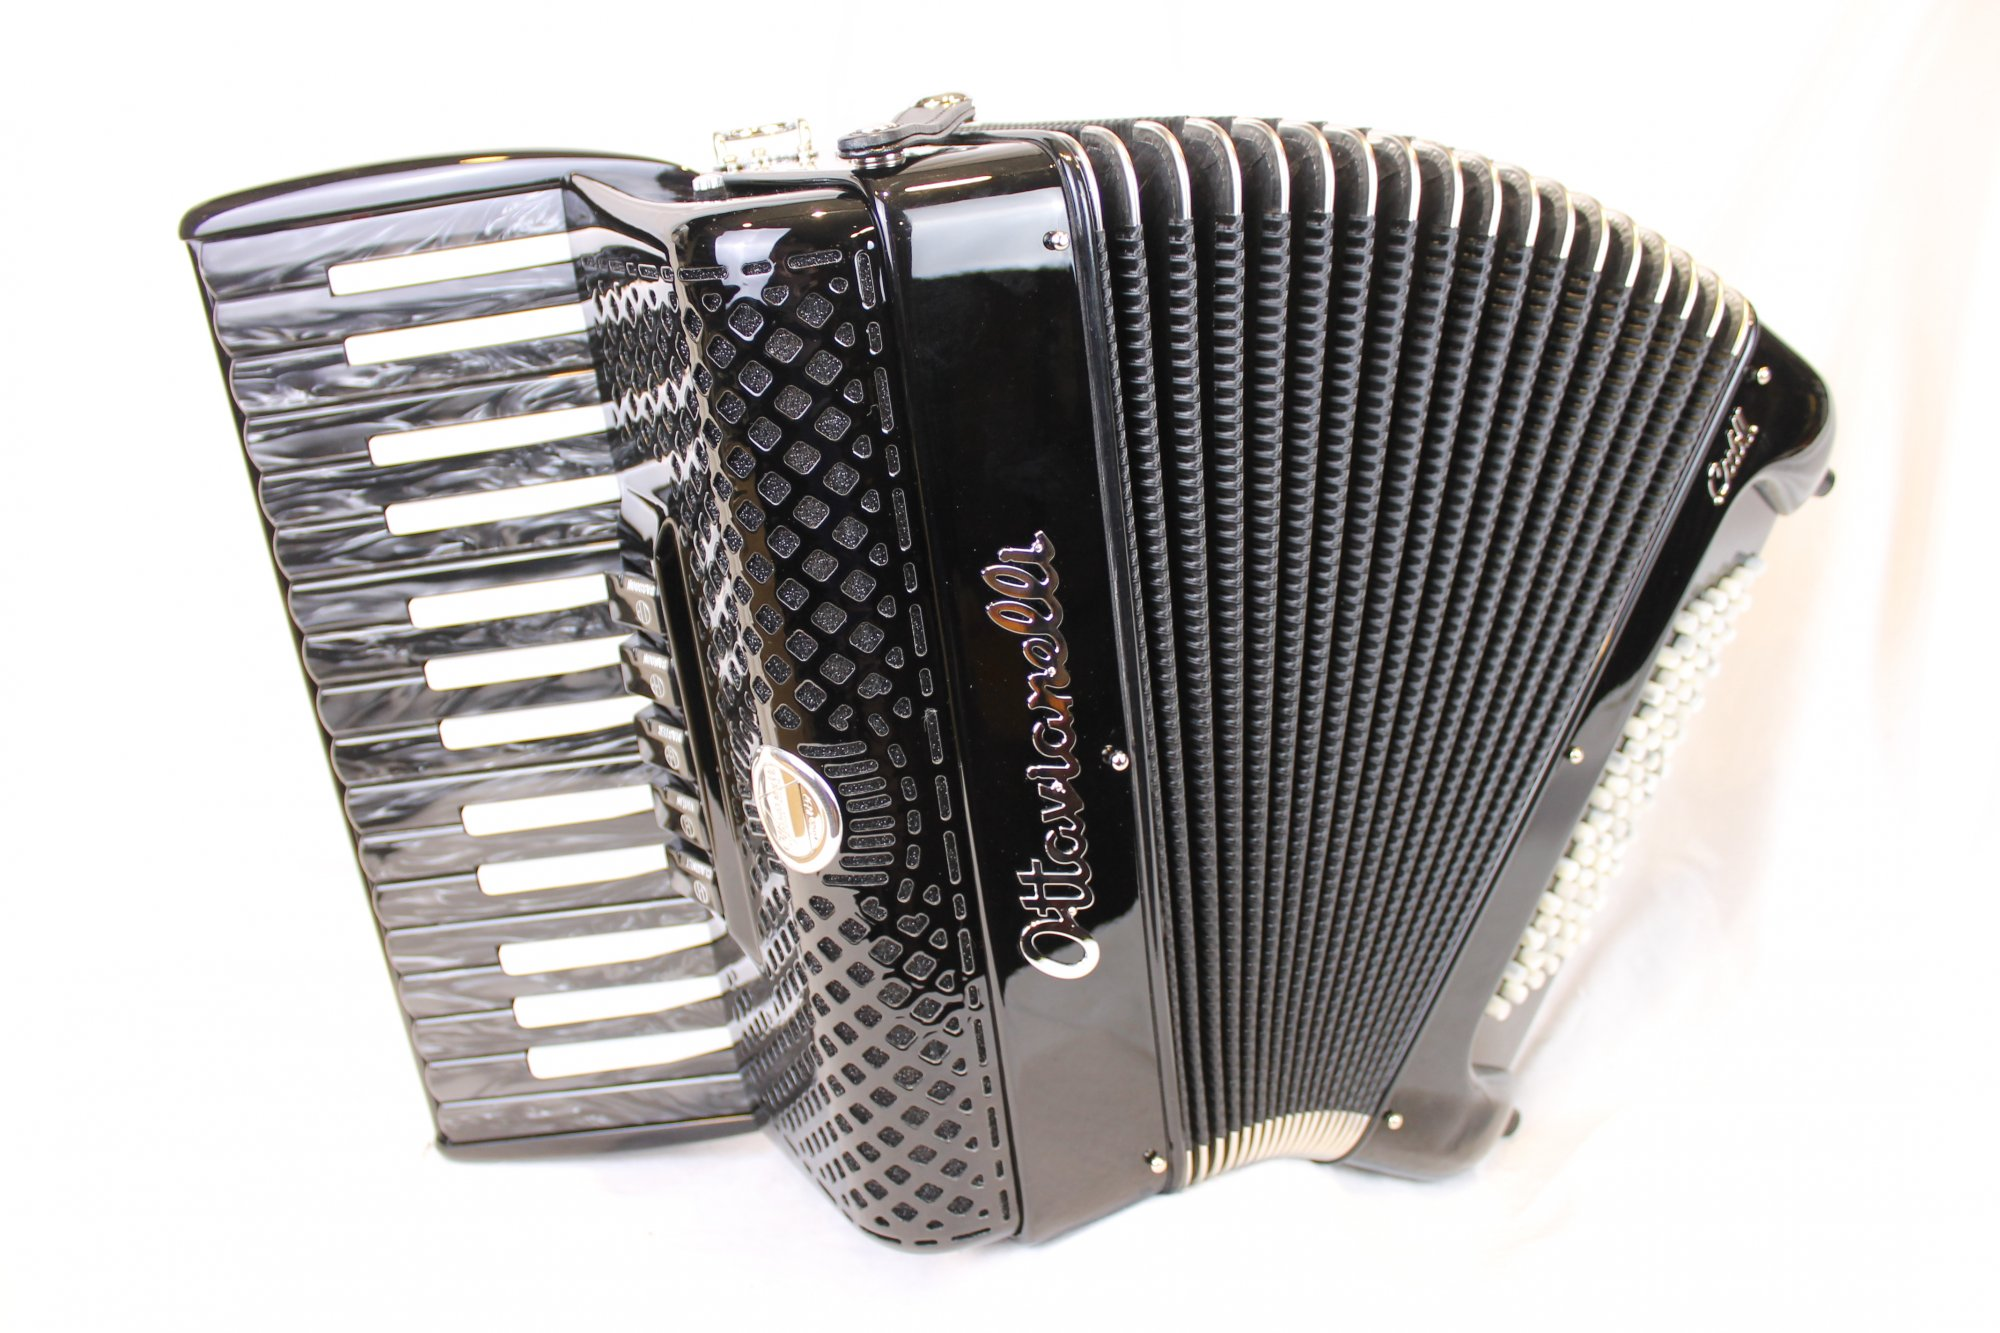 NEW Black Inverted Ottavianelli Cub II Piano Accordion LMM 30 72